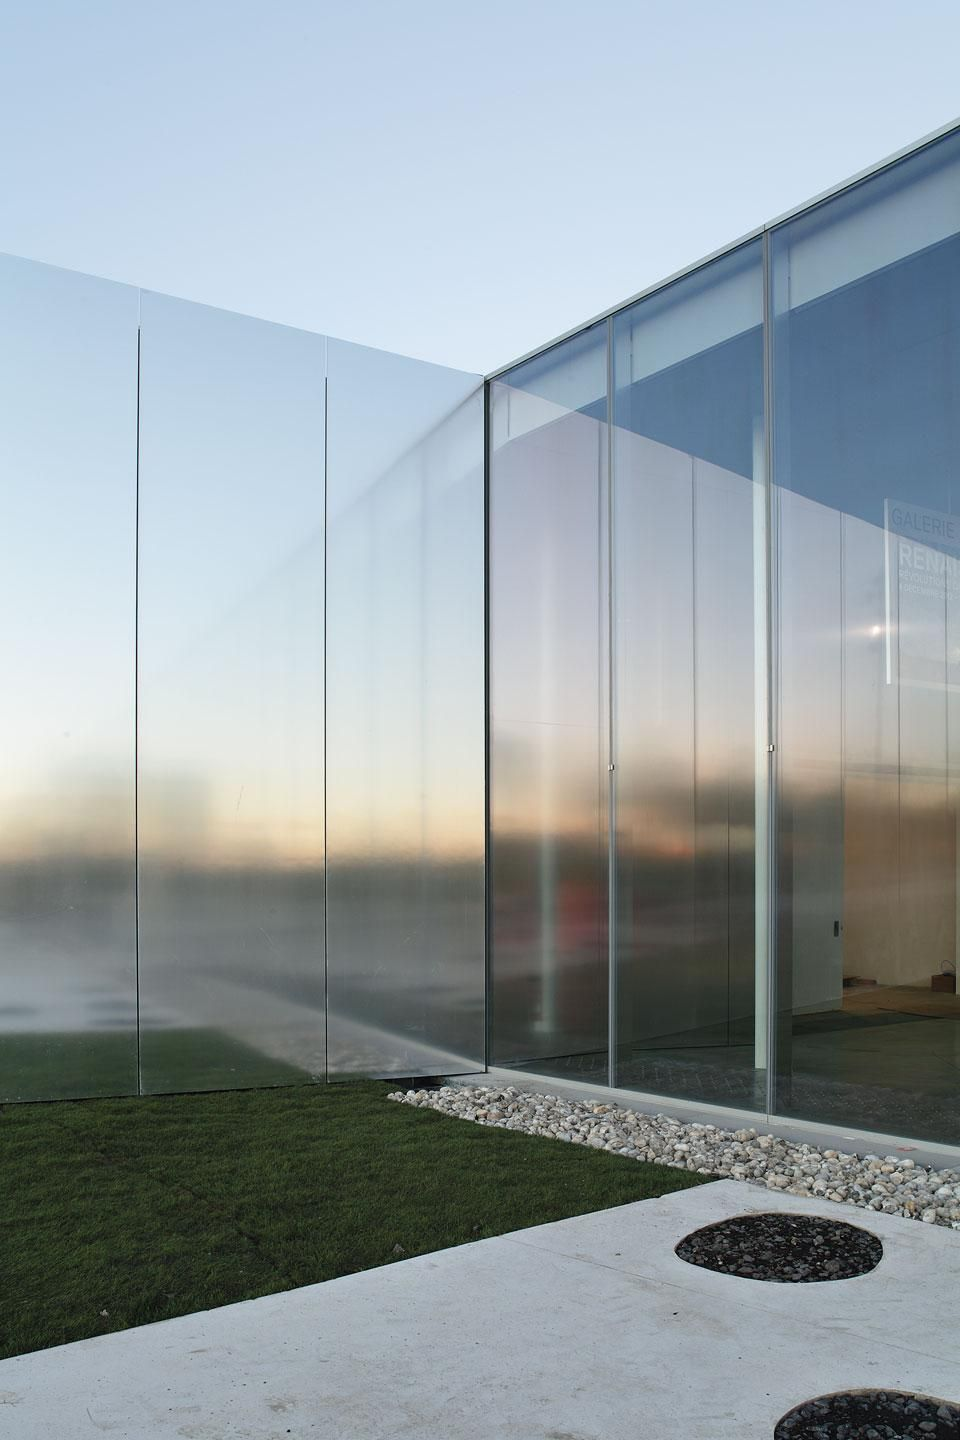 Louvre Lens By Sanaa A Museum Of Time Architecture